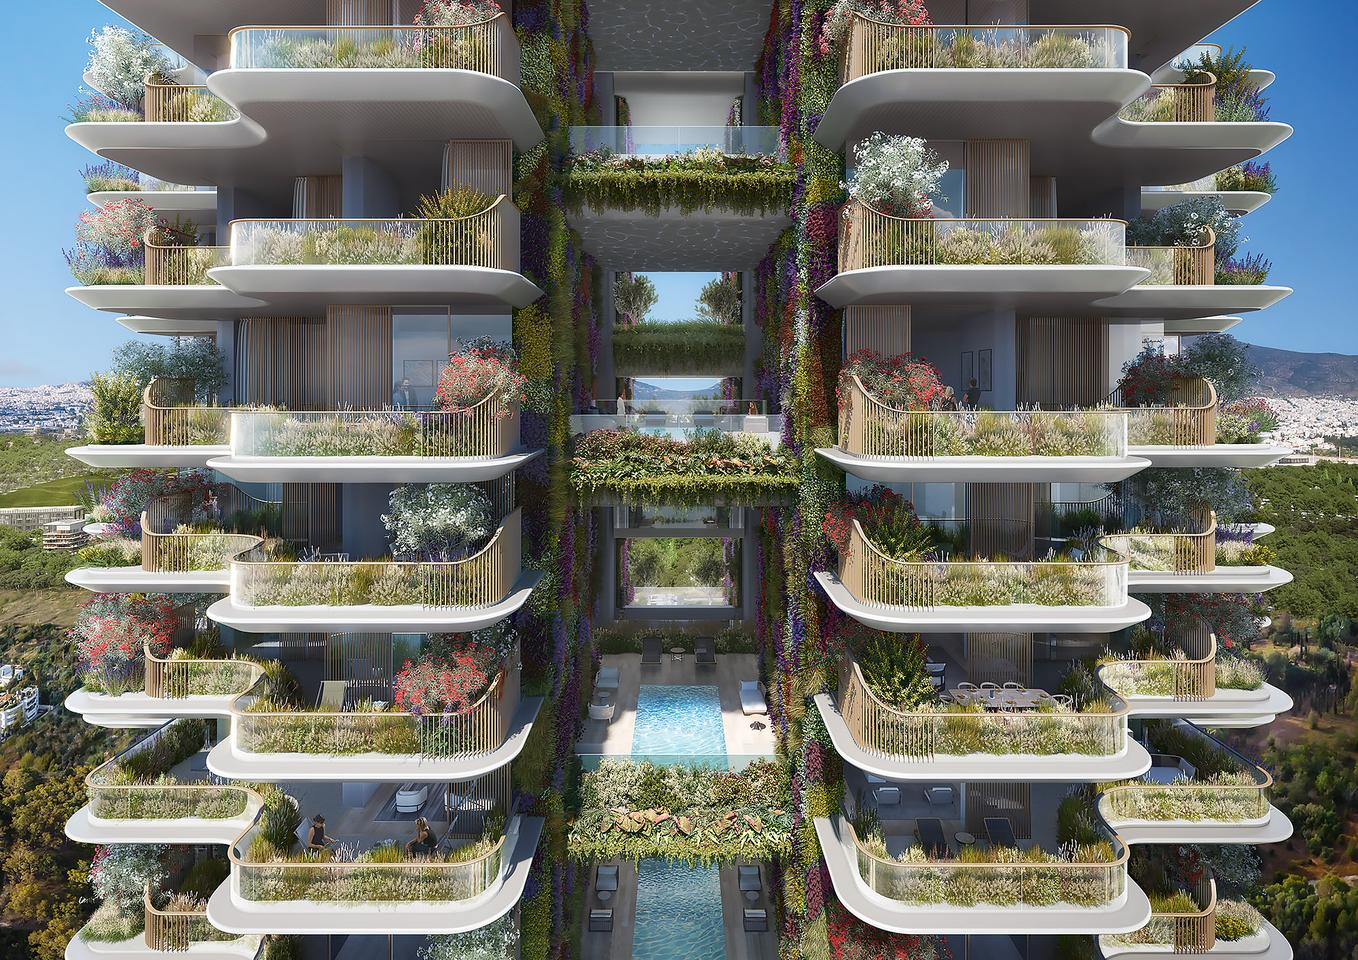 Marina Tower's exterior will be enlivened by large amounts of greenery